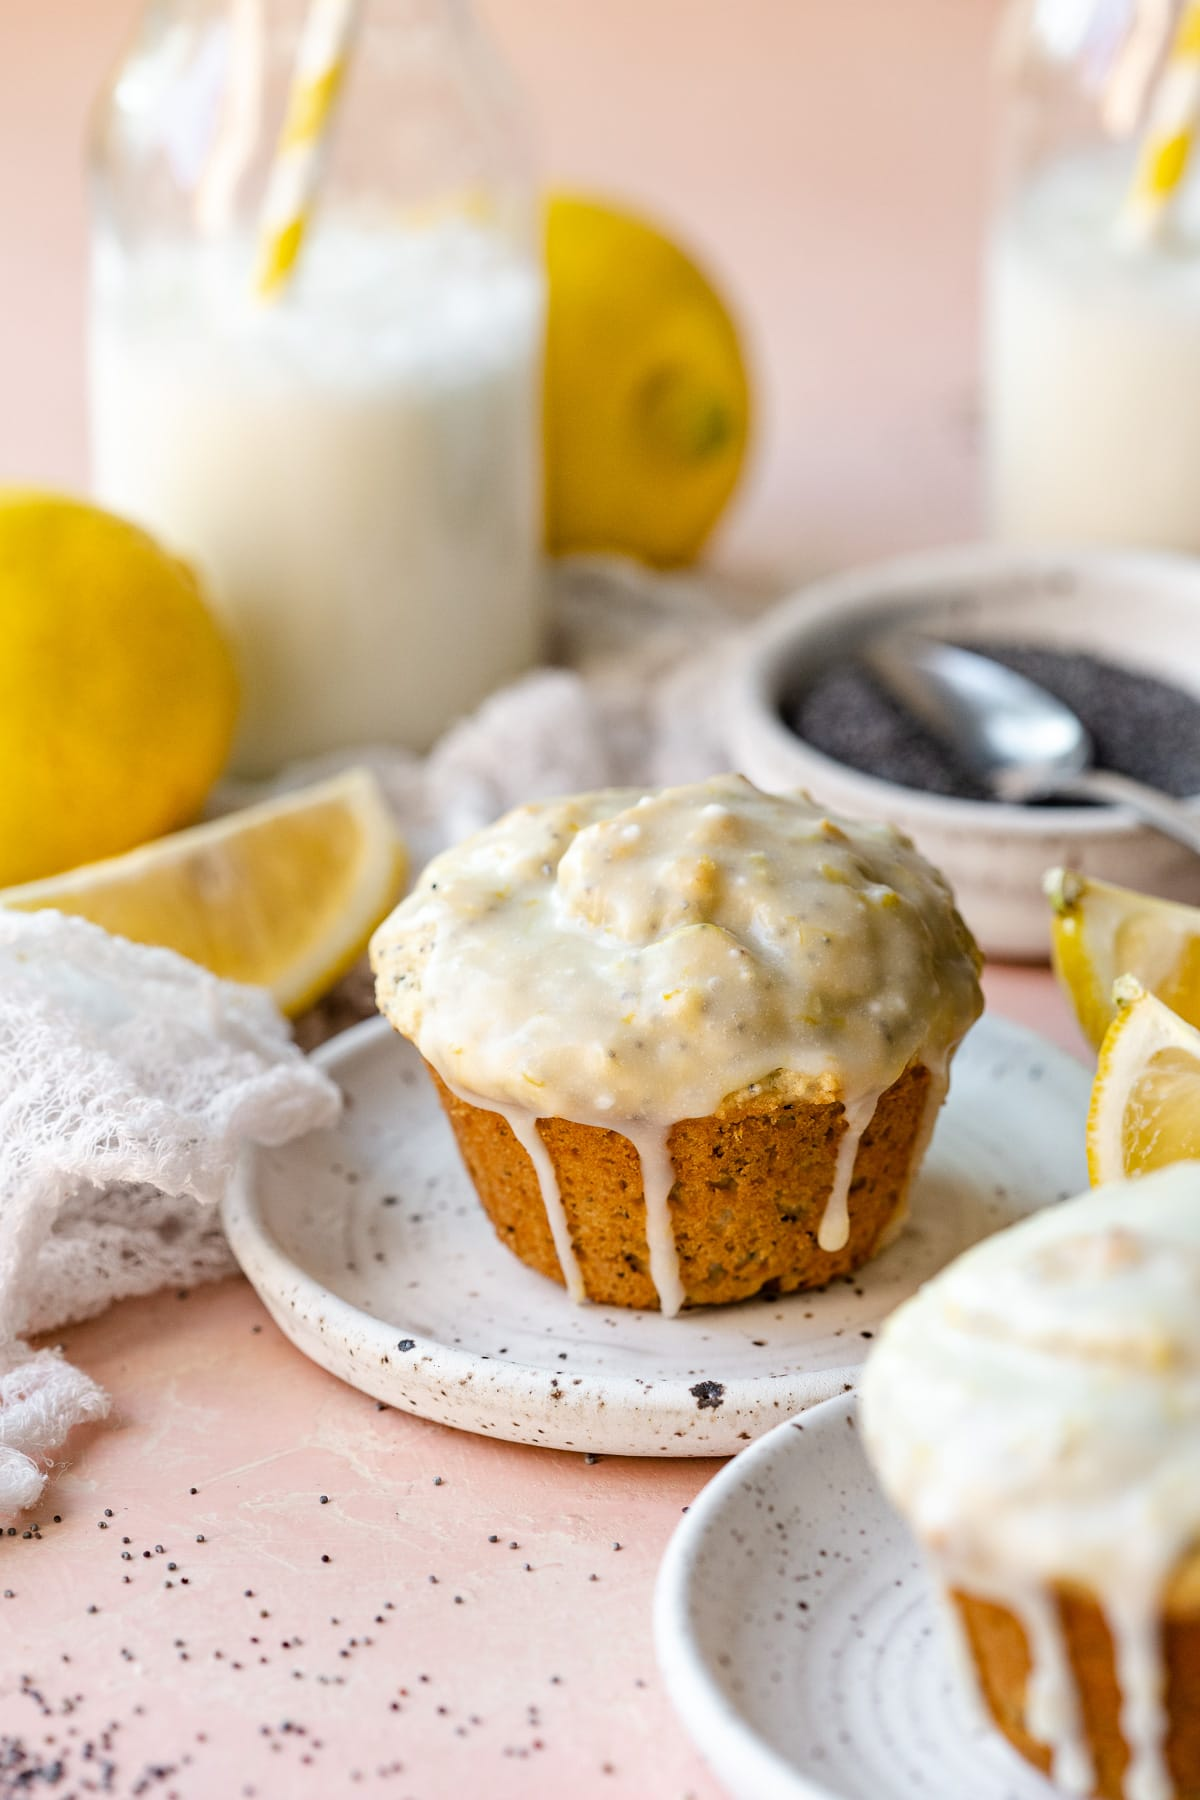 A muffin on a plate, with lemon slices, poppy seeds, and two bottles of milk in the background.